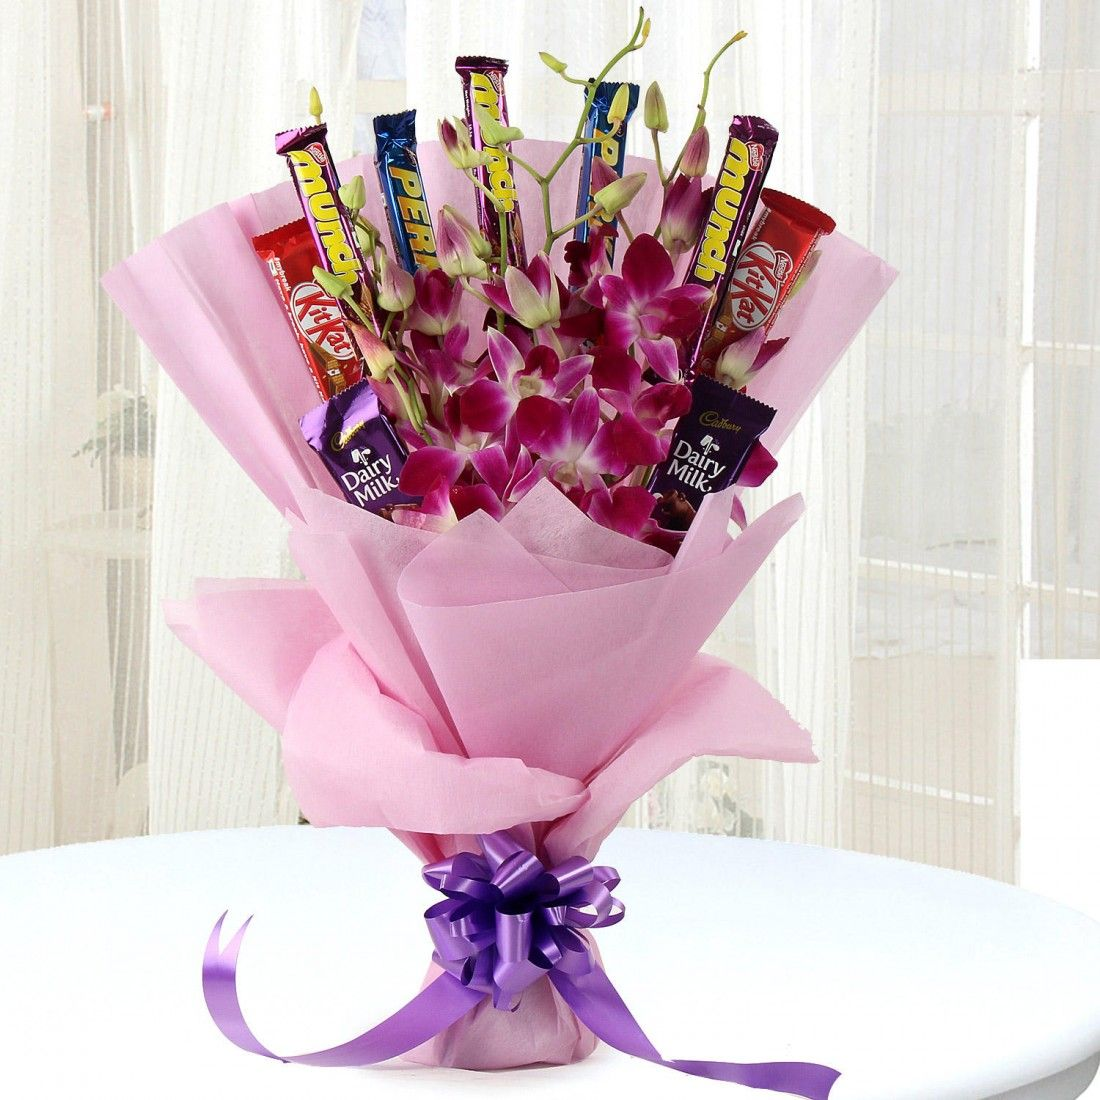 From flowers, Cakes, Gourmet, spiritual items, home decor